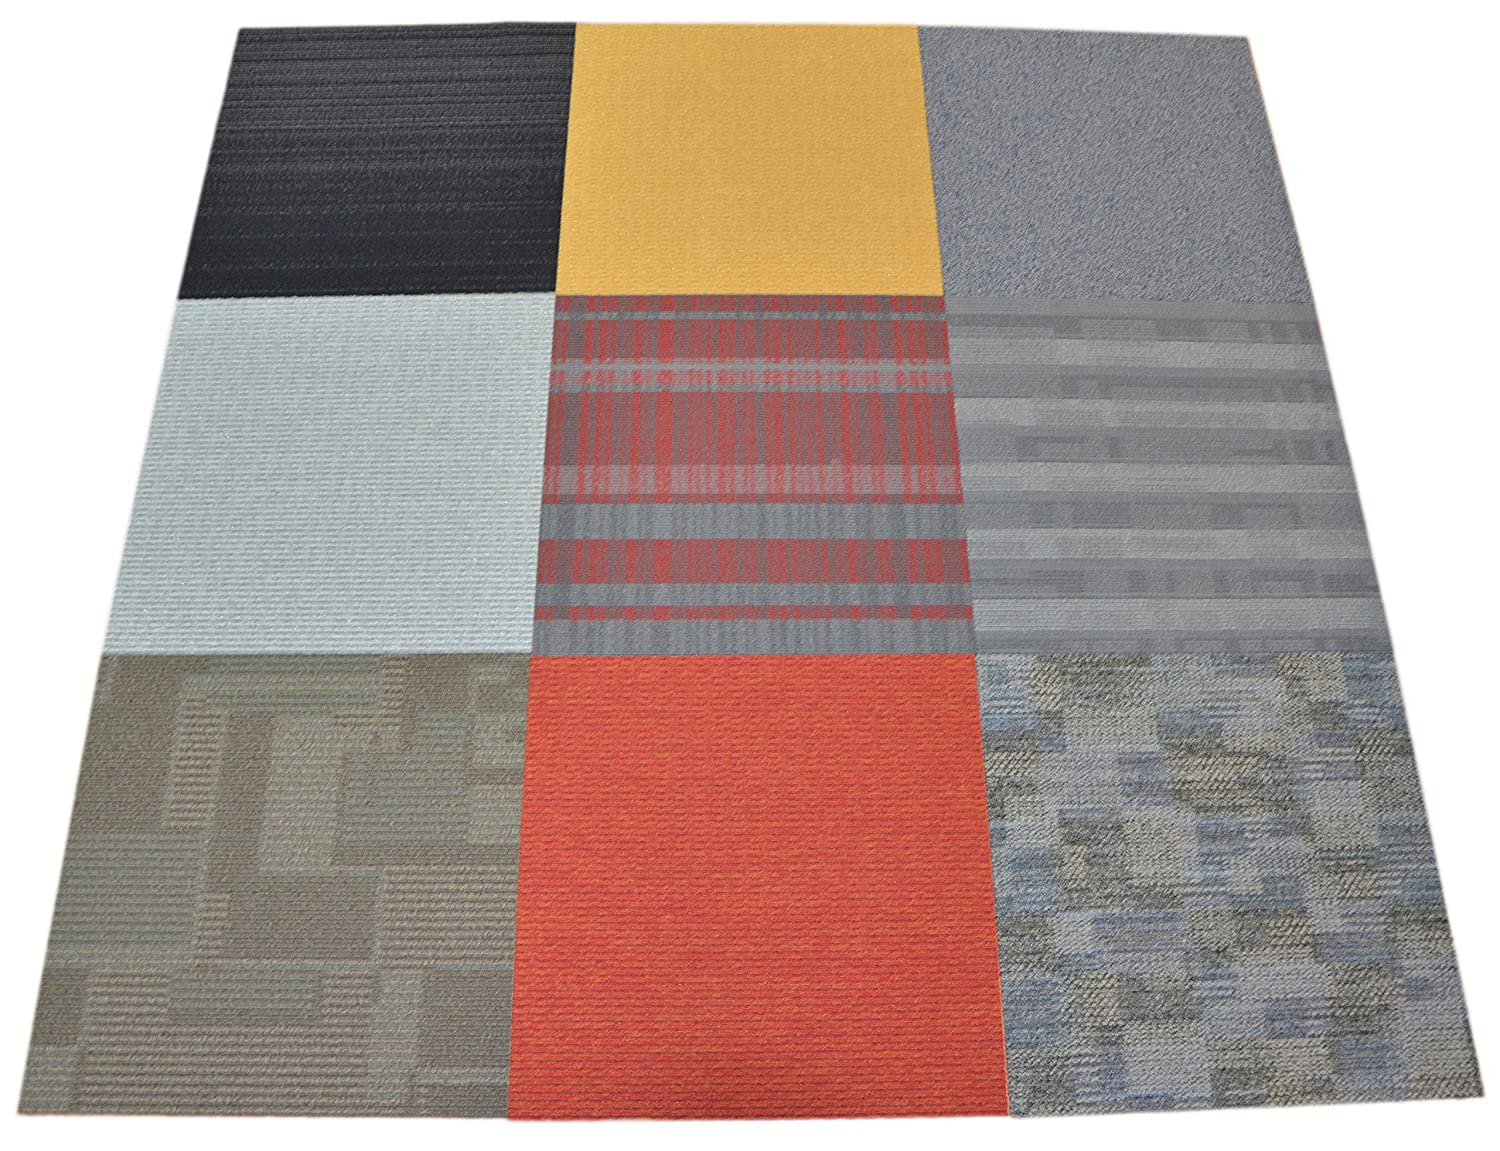 Commercial Carpet Tile Random Assorted Colors